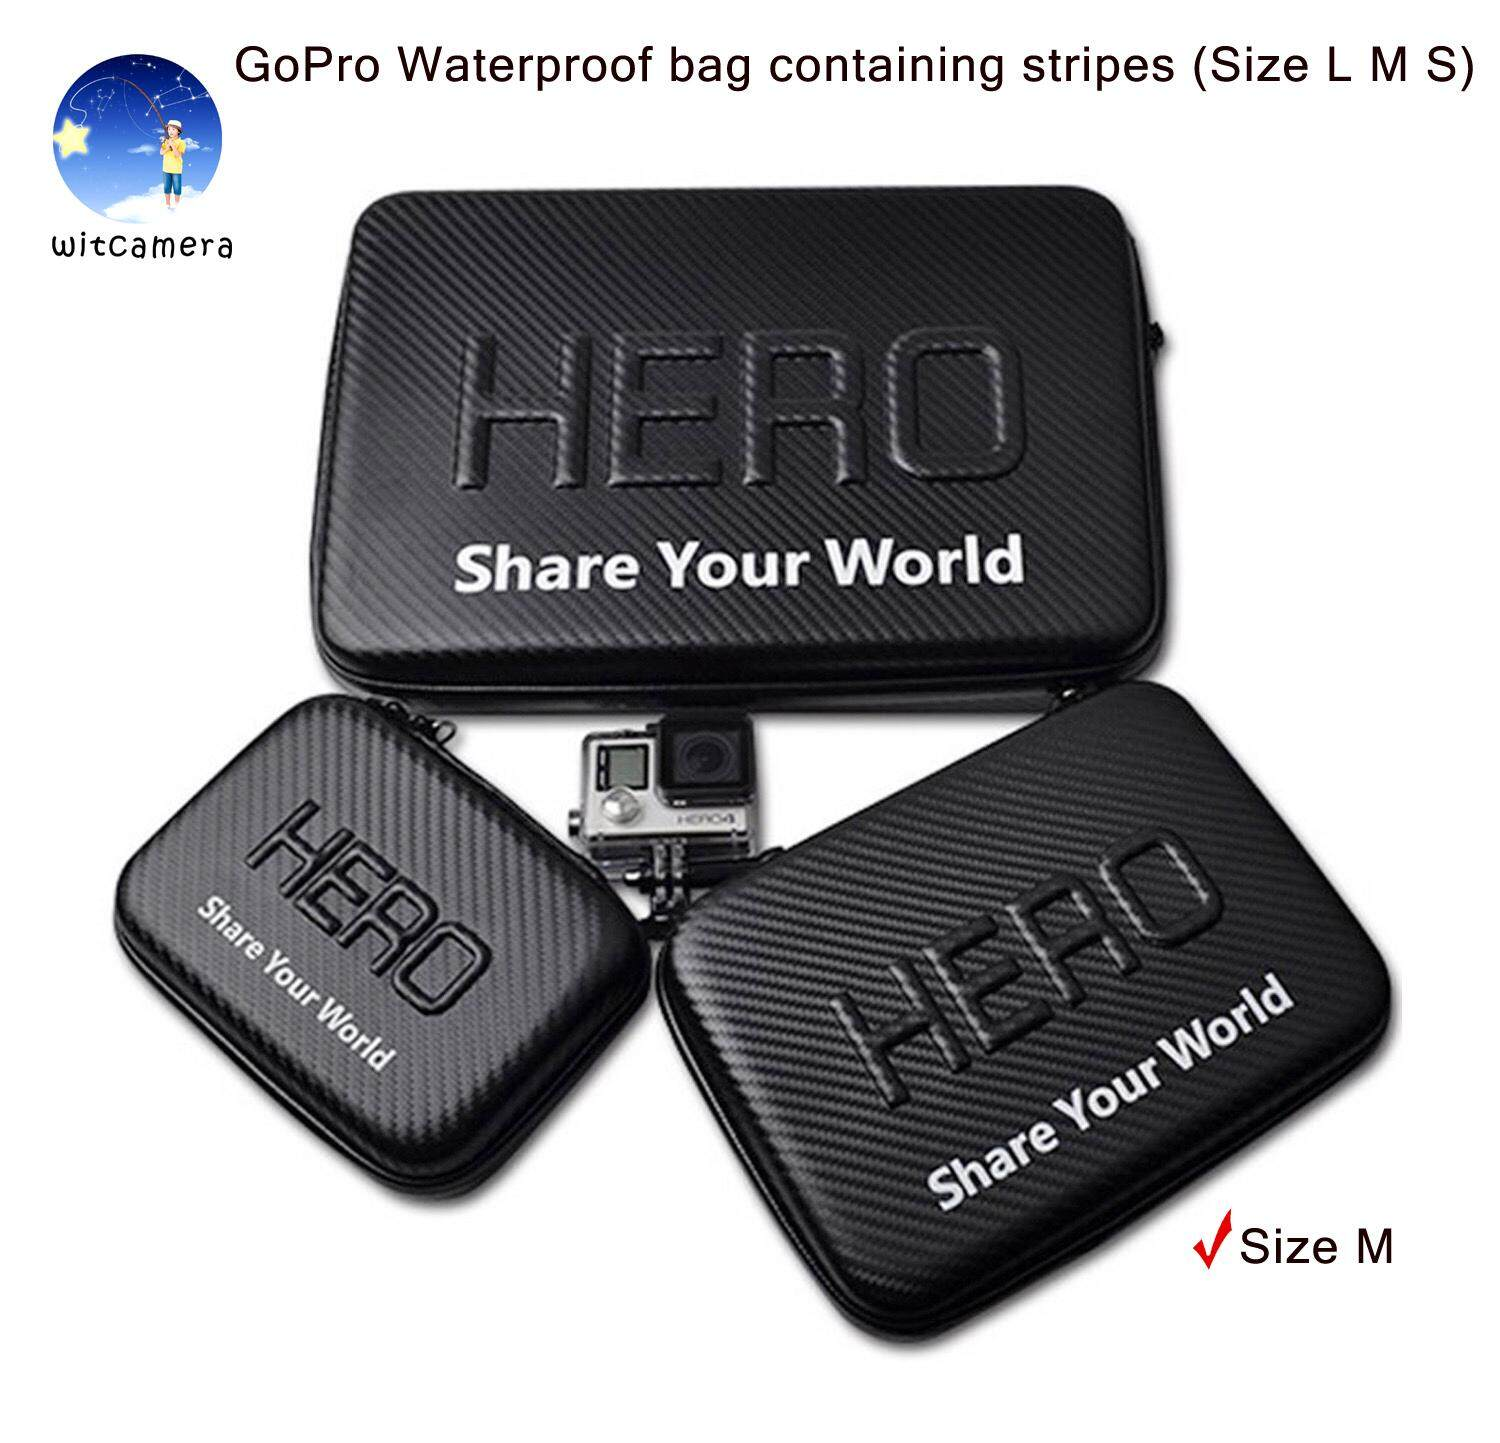 GoPro กระเป๋ากันน้ำ ลายเคฟล่า ใส่ได้กับ GOPRO Hero 6/5/4/3+/3 SJCam Xiaomi YI ฯลฯ (มีไซส์ L M S) GoPro Waterproof bag containing stripes (Size L M S), GoPro, SJCam, Xiaomi YI, and other accessories can be installed